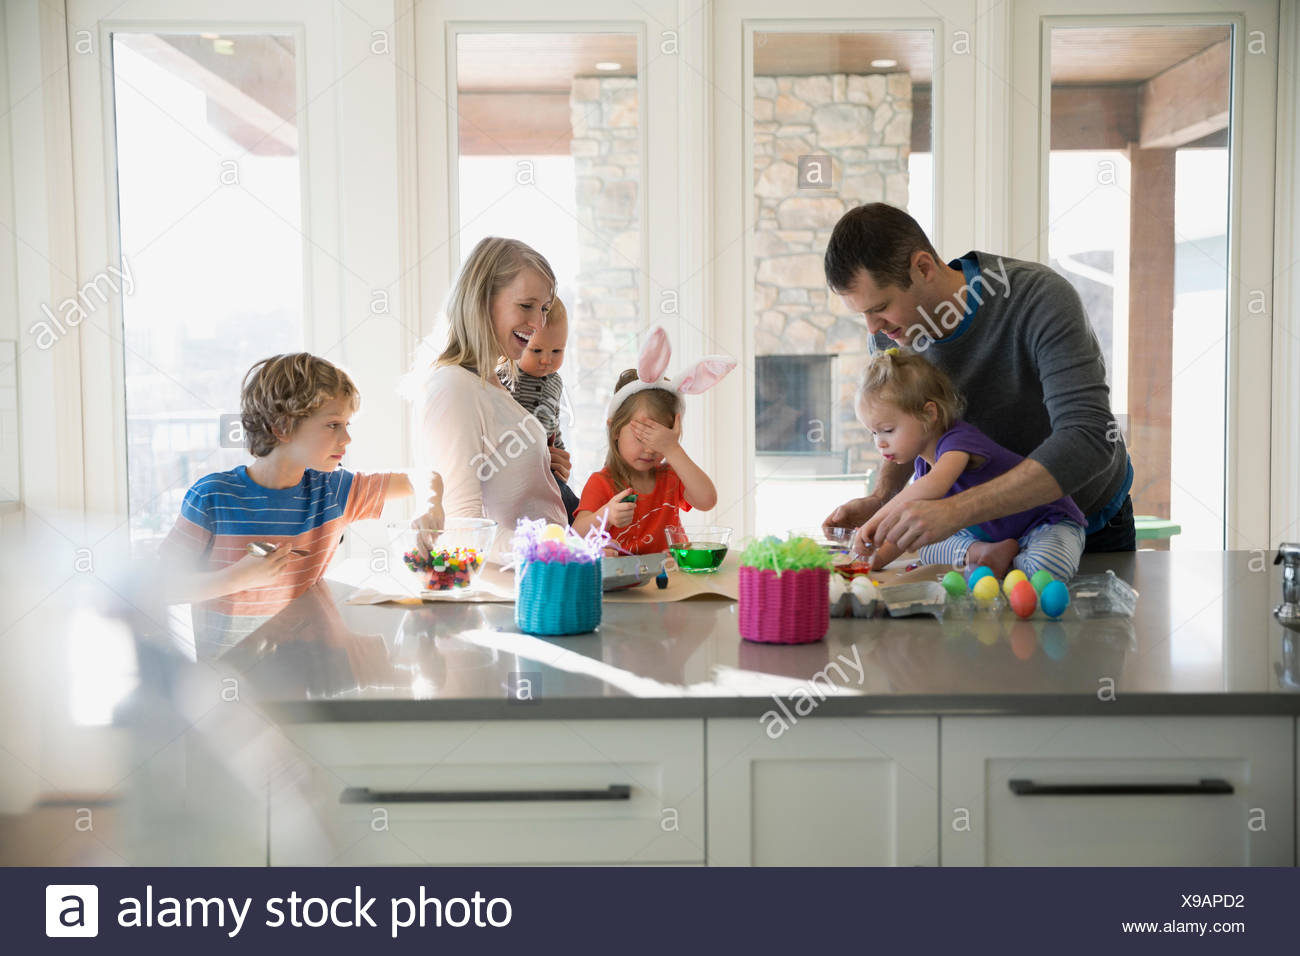 Family coloring Easter eggs in kitchen - Stock Image